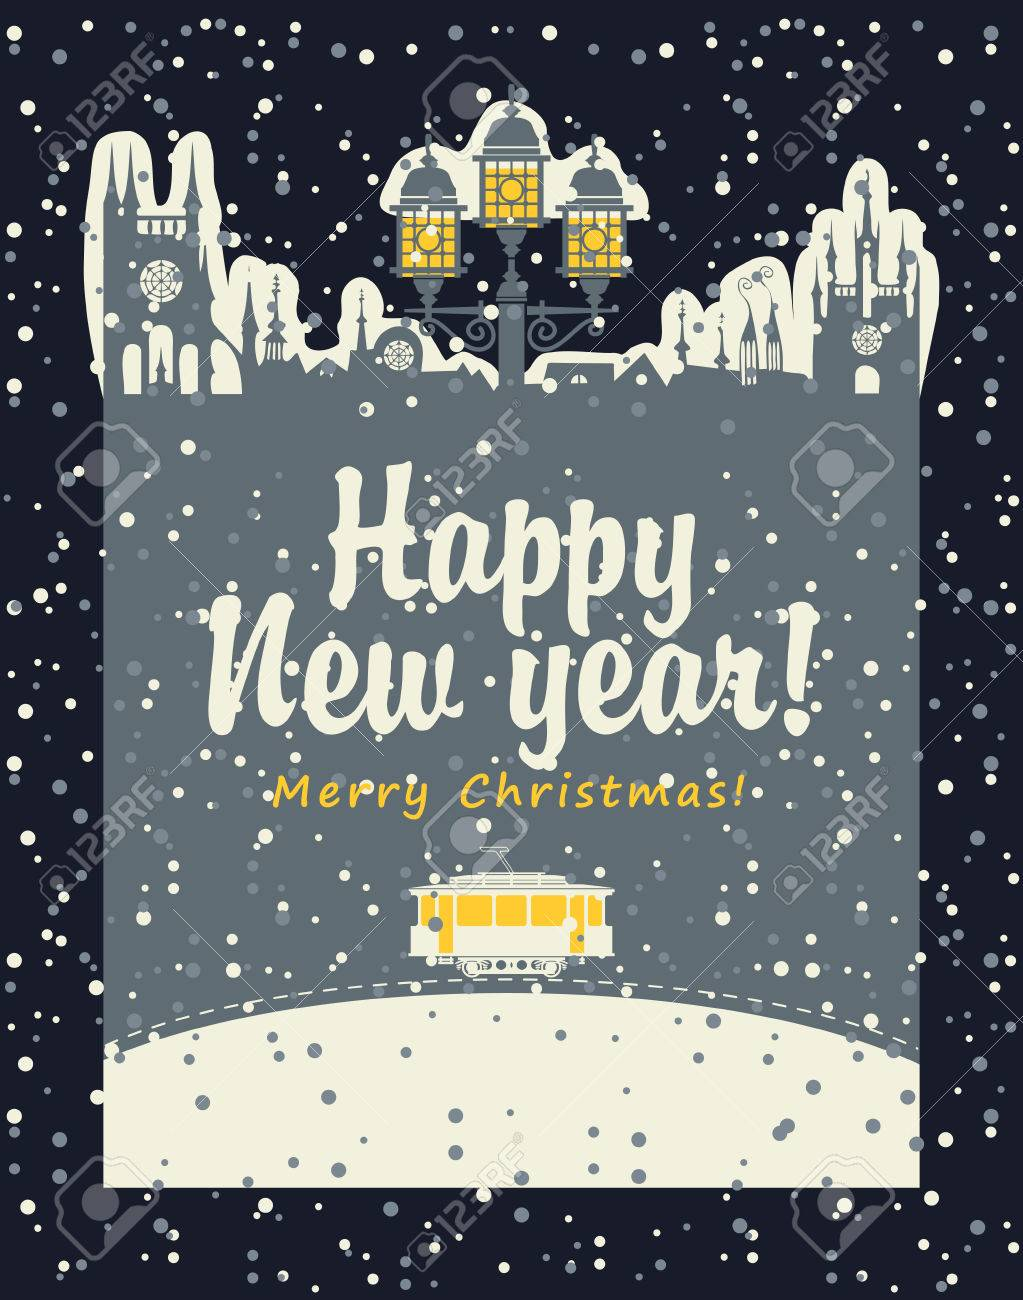 Christmas Card With An Old Tram In The City And A Street Lamp ...